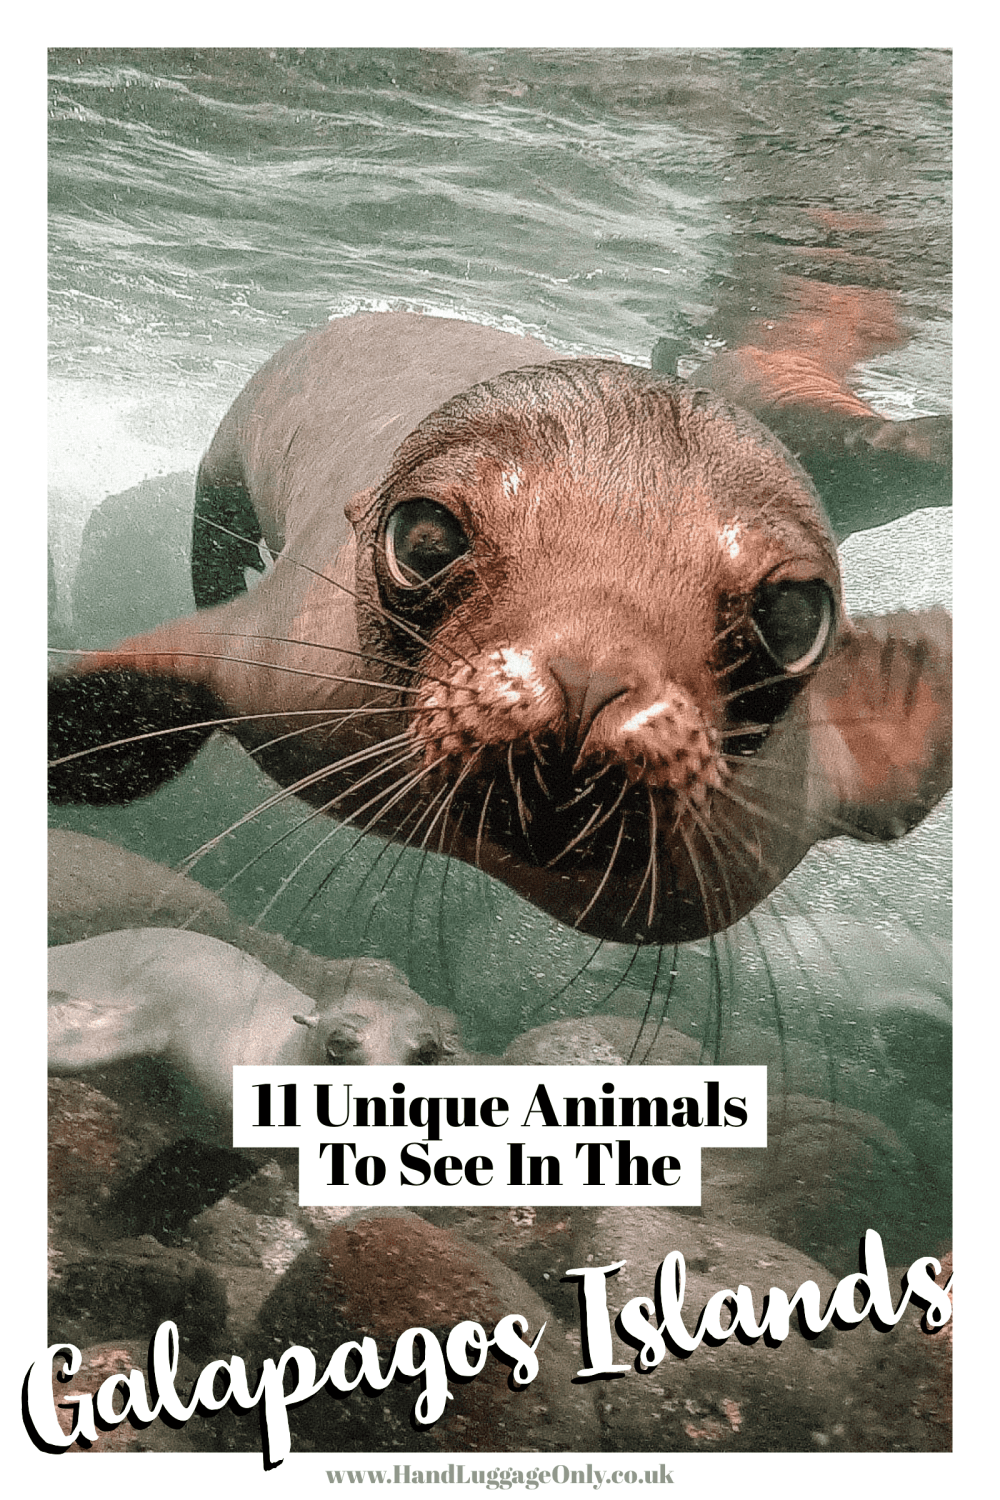 Animals To See In The Galapagos Islands (1)